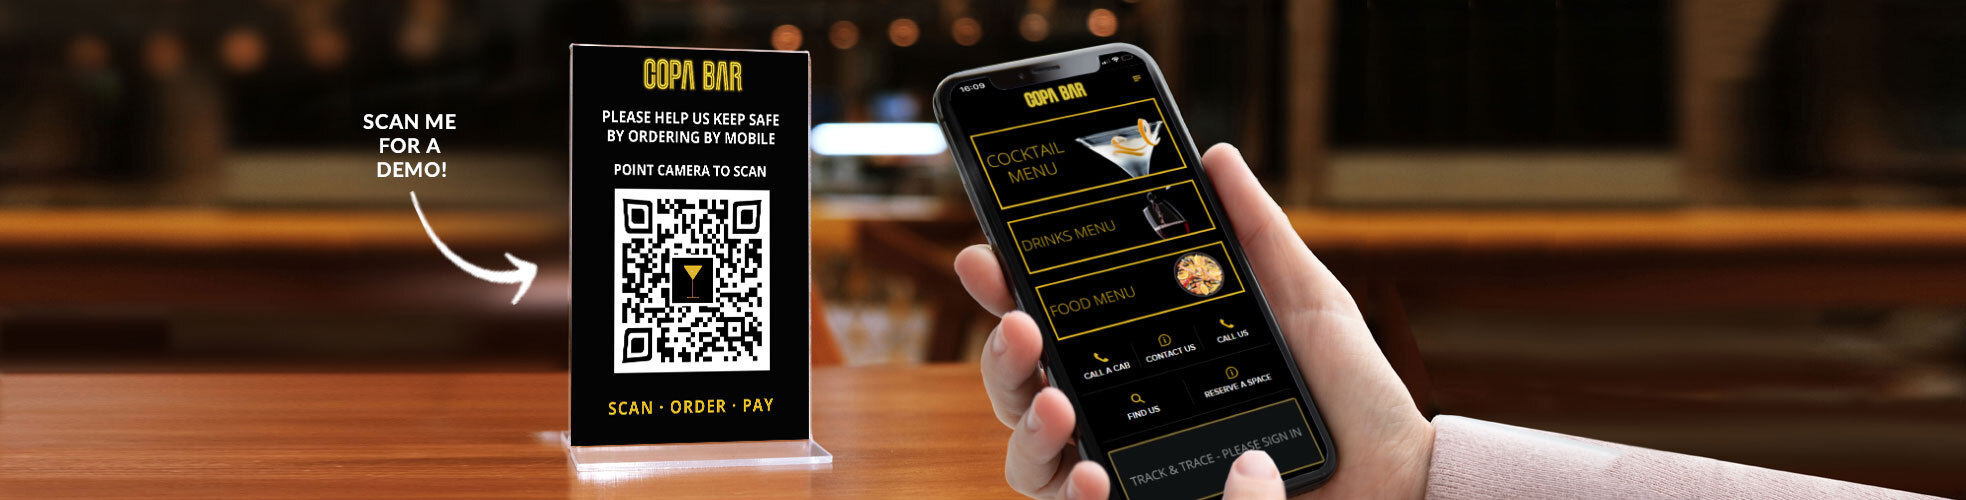 ServeSafely Mobile Order and Pay Demo